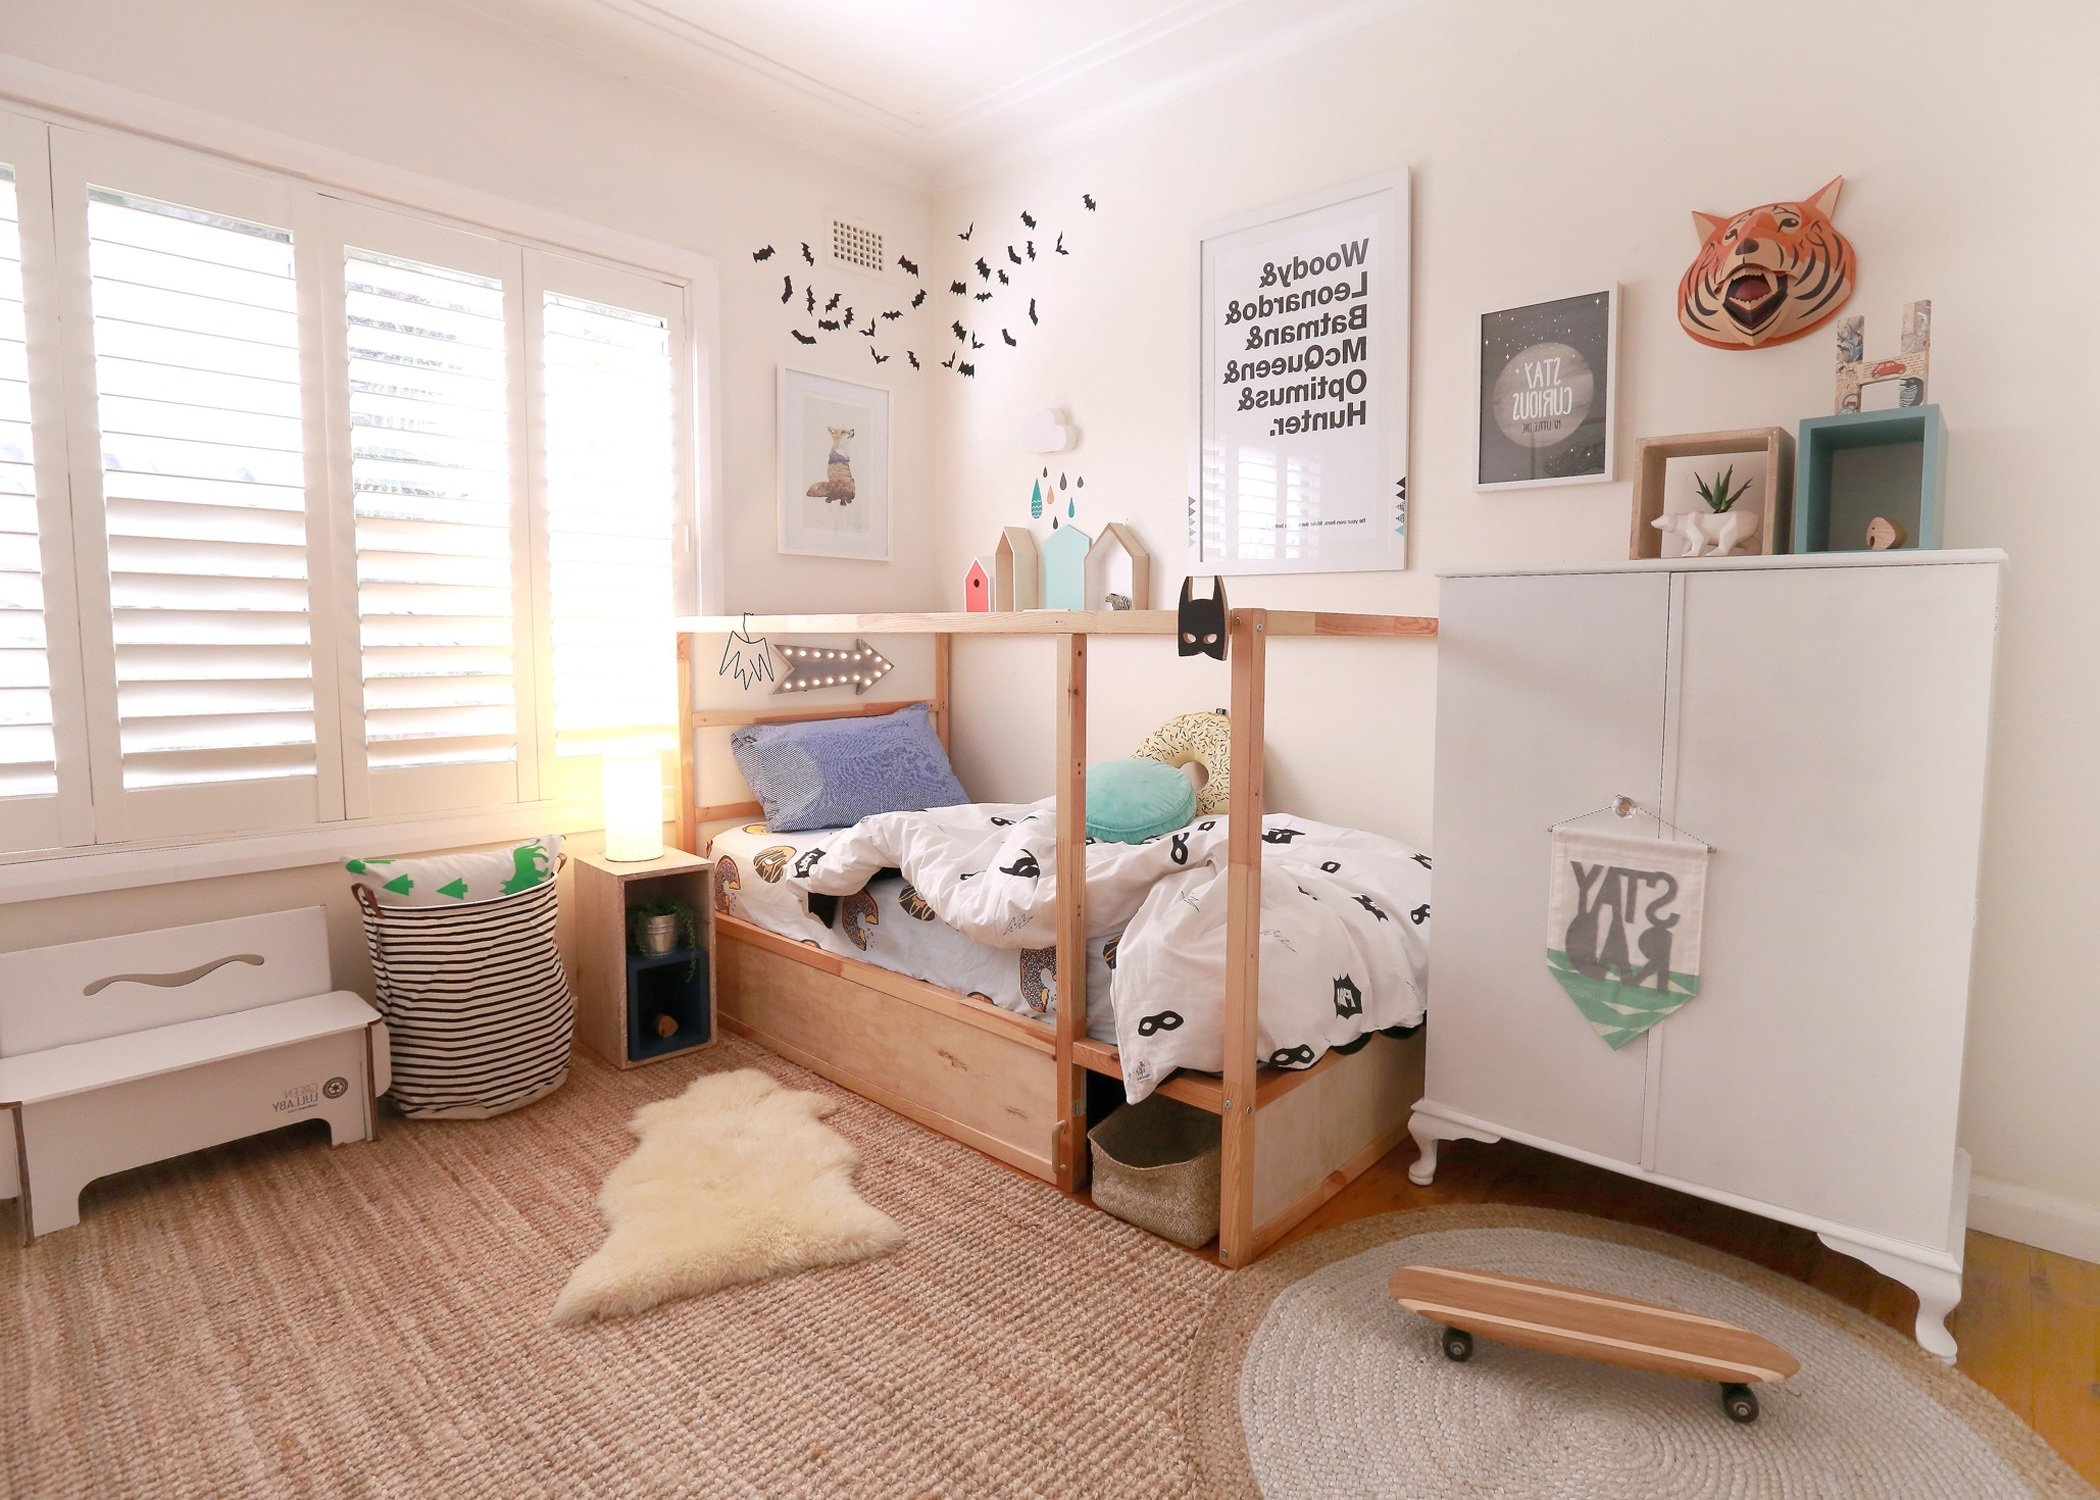 Kinderzimmer pimpen 10 diy hacks f r ihr ikea kura bett for Wandregal kinderzimmer ikea